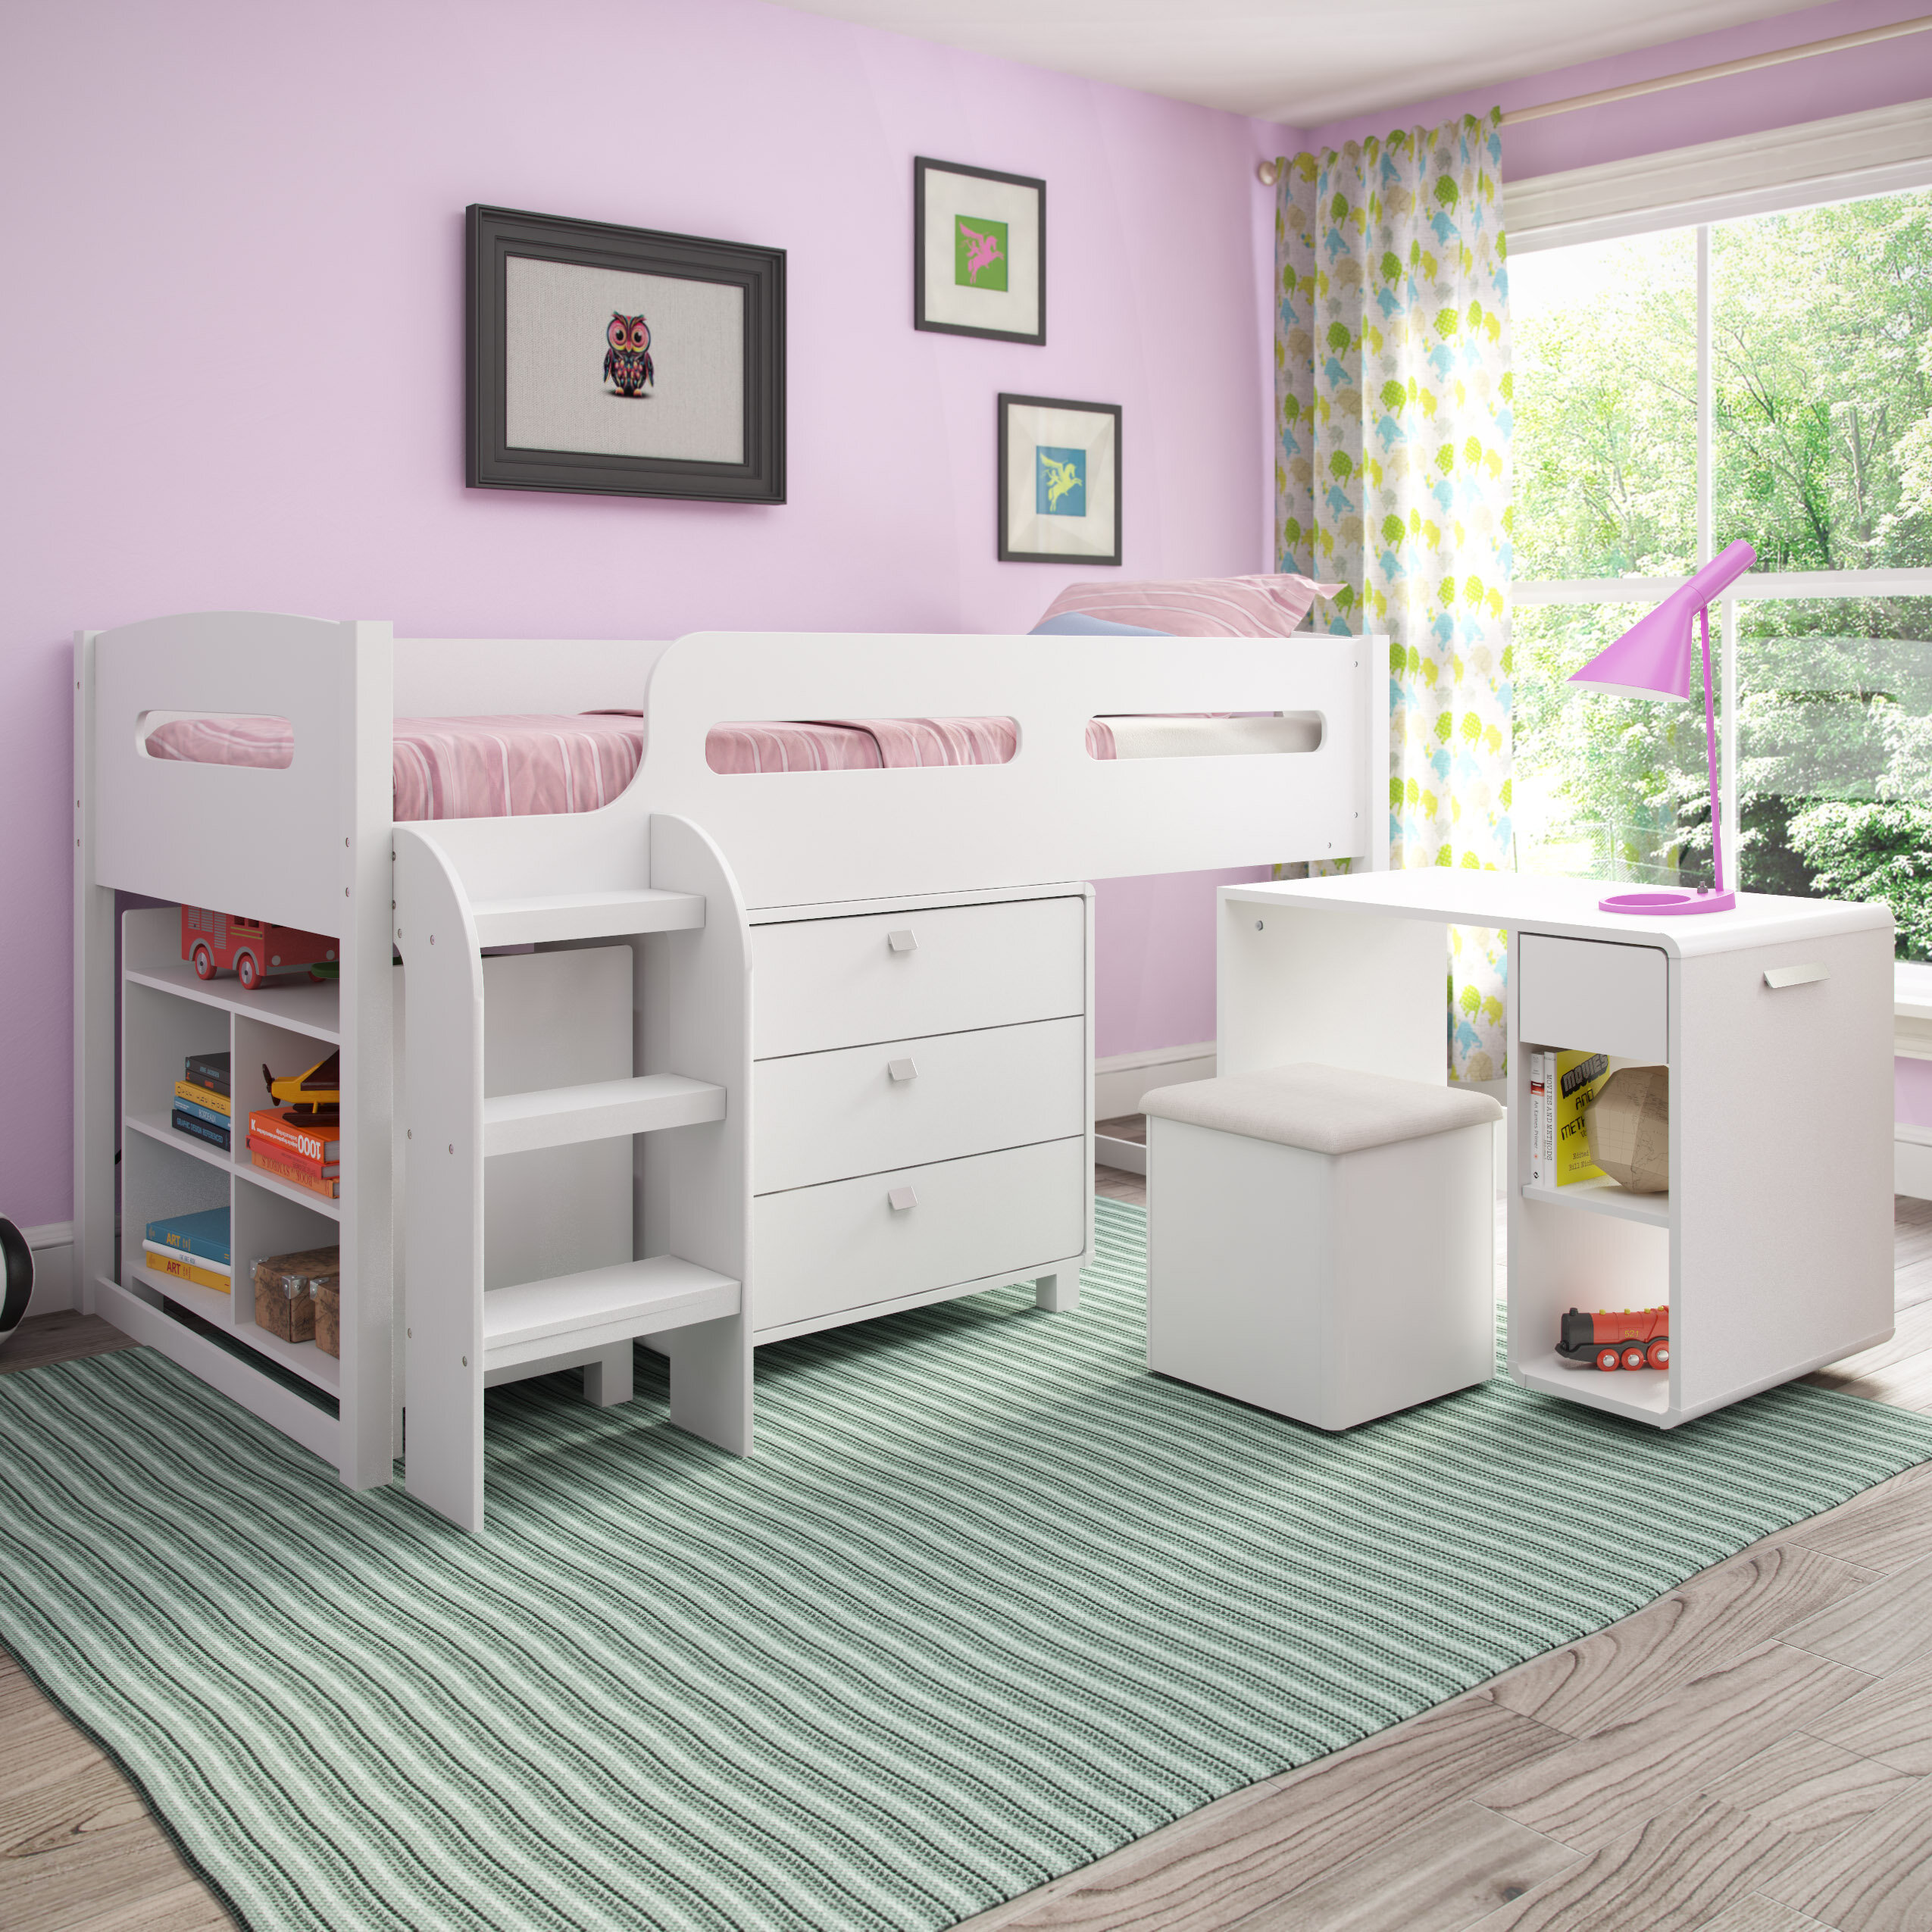 Mack Milo Angelica Twin Low Loft Bed With Drawers And Shelves